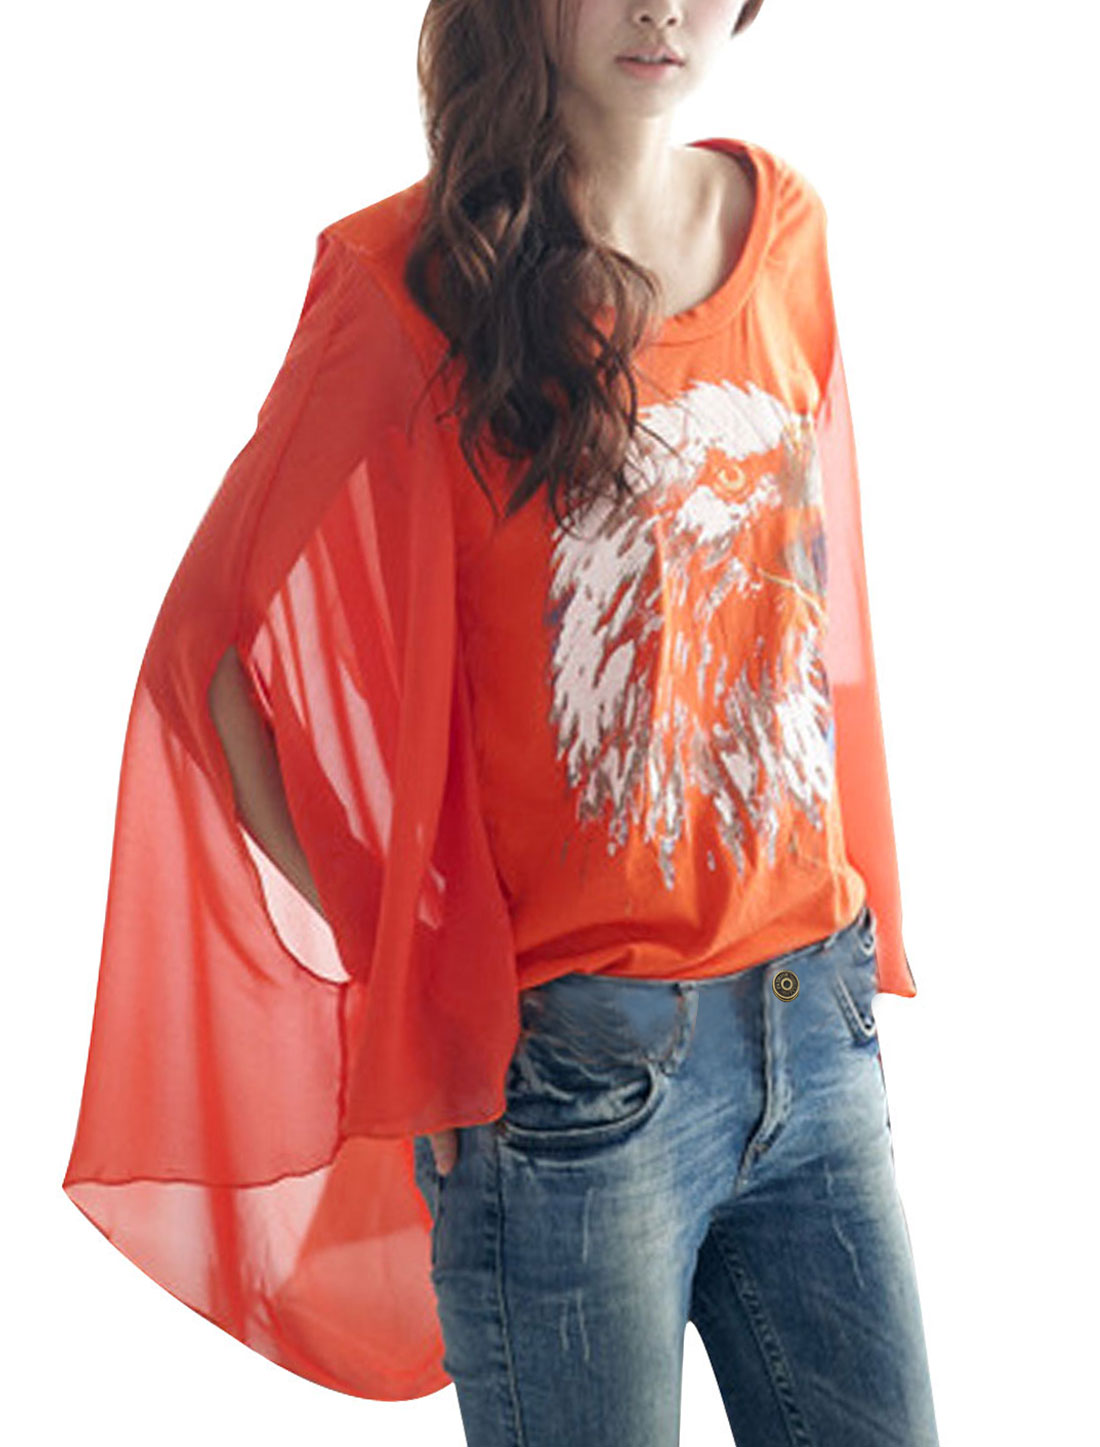 Ladies Round Neck Eagle Head Prints Chiffon Splice Orange Shirt XS